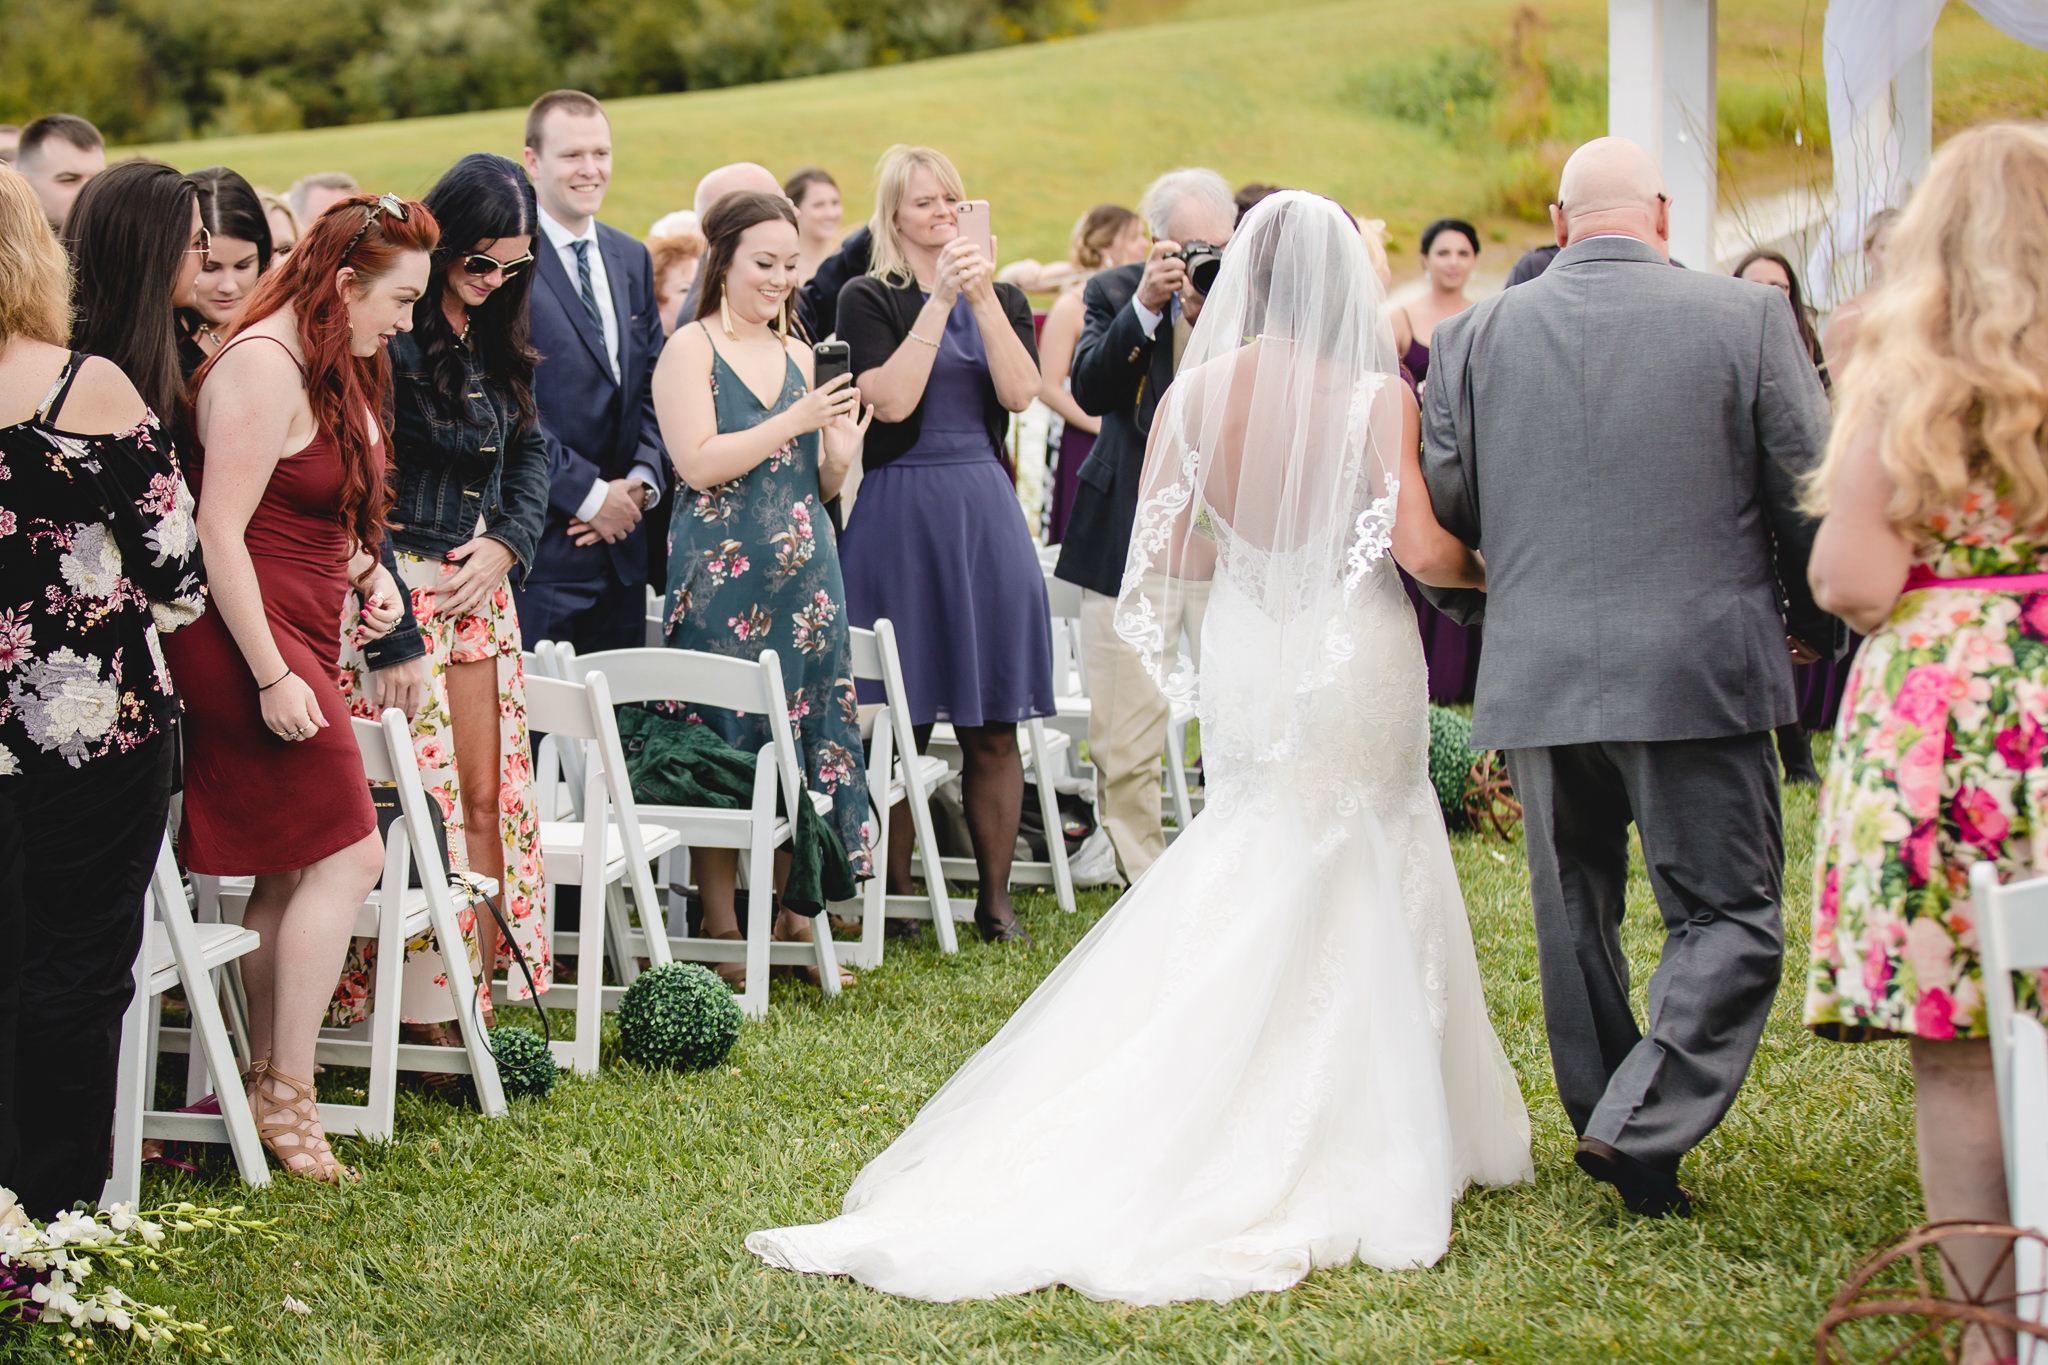 Father and daughter walk down the aisle at a White Barn wedding ceremony